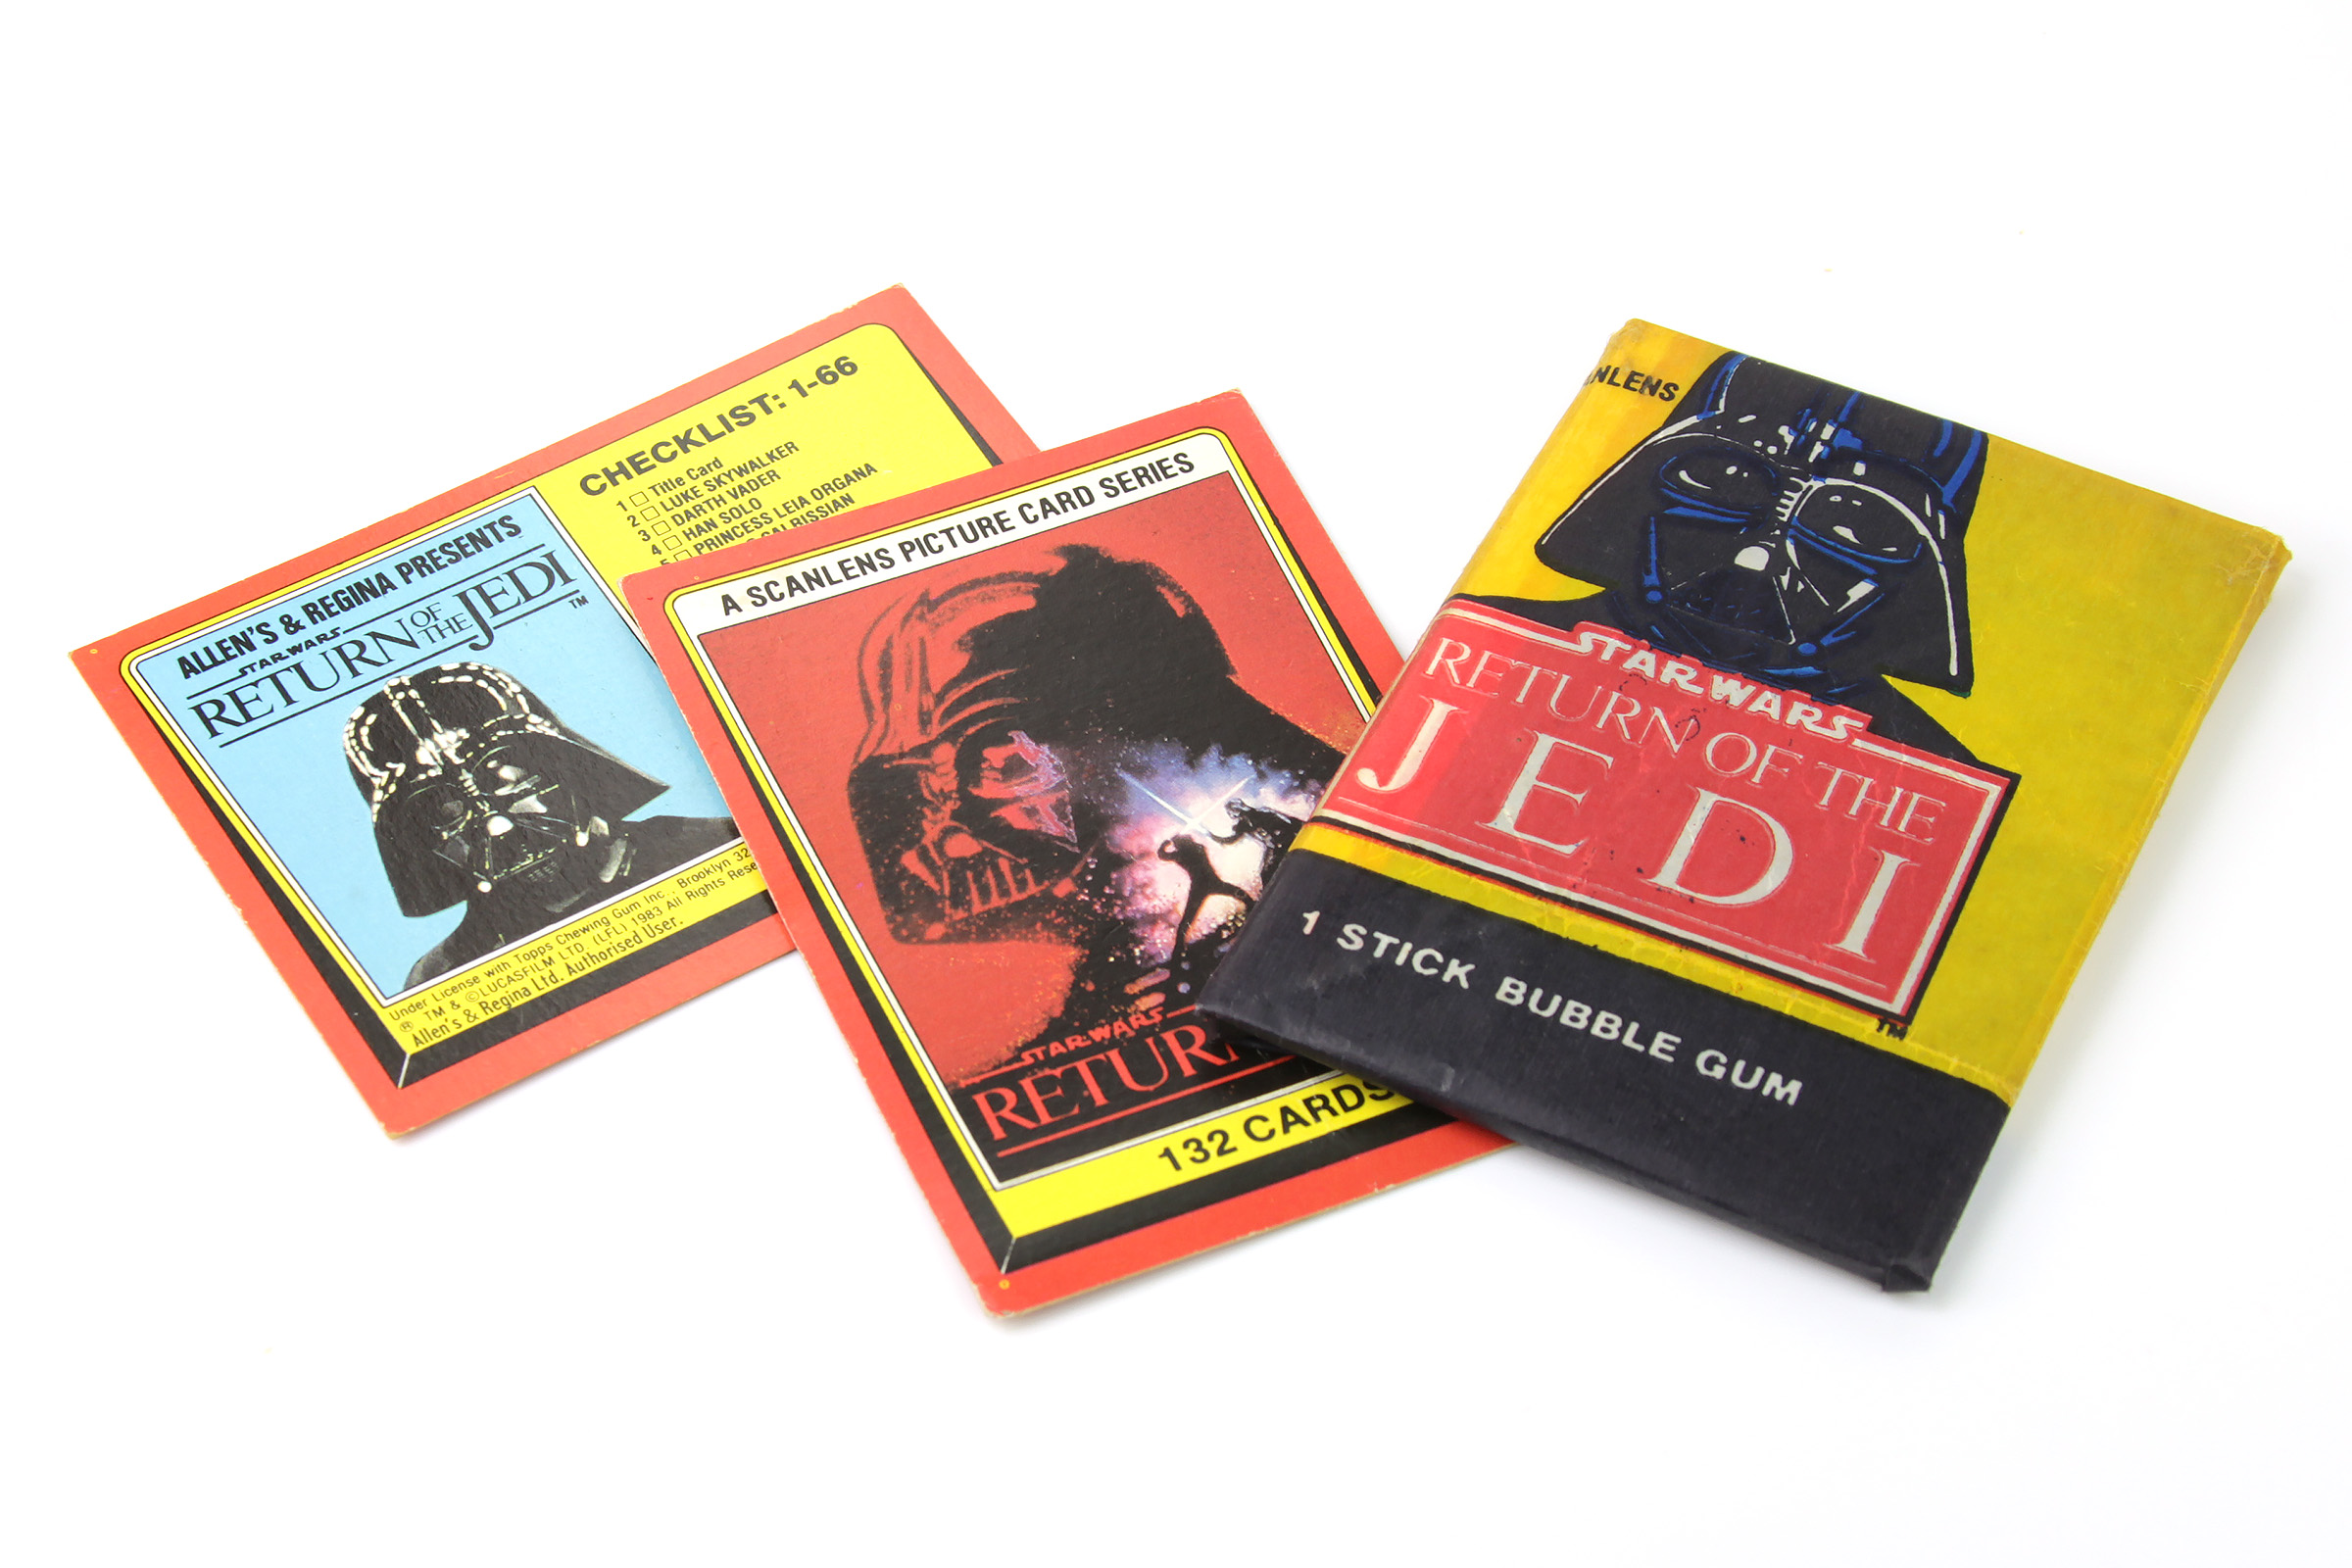 Allen's and Regina ROTJ bubblegum pack and cards